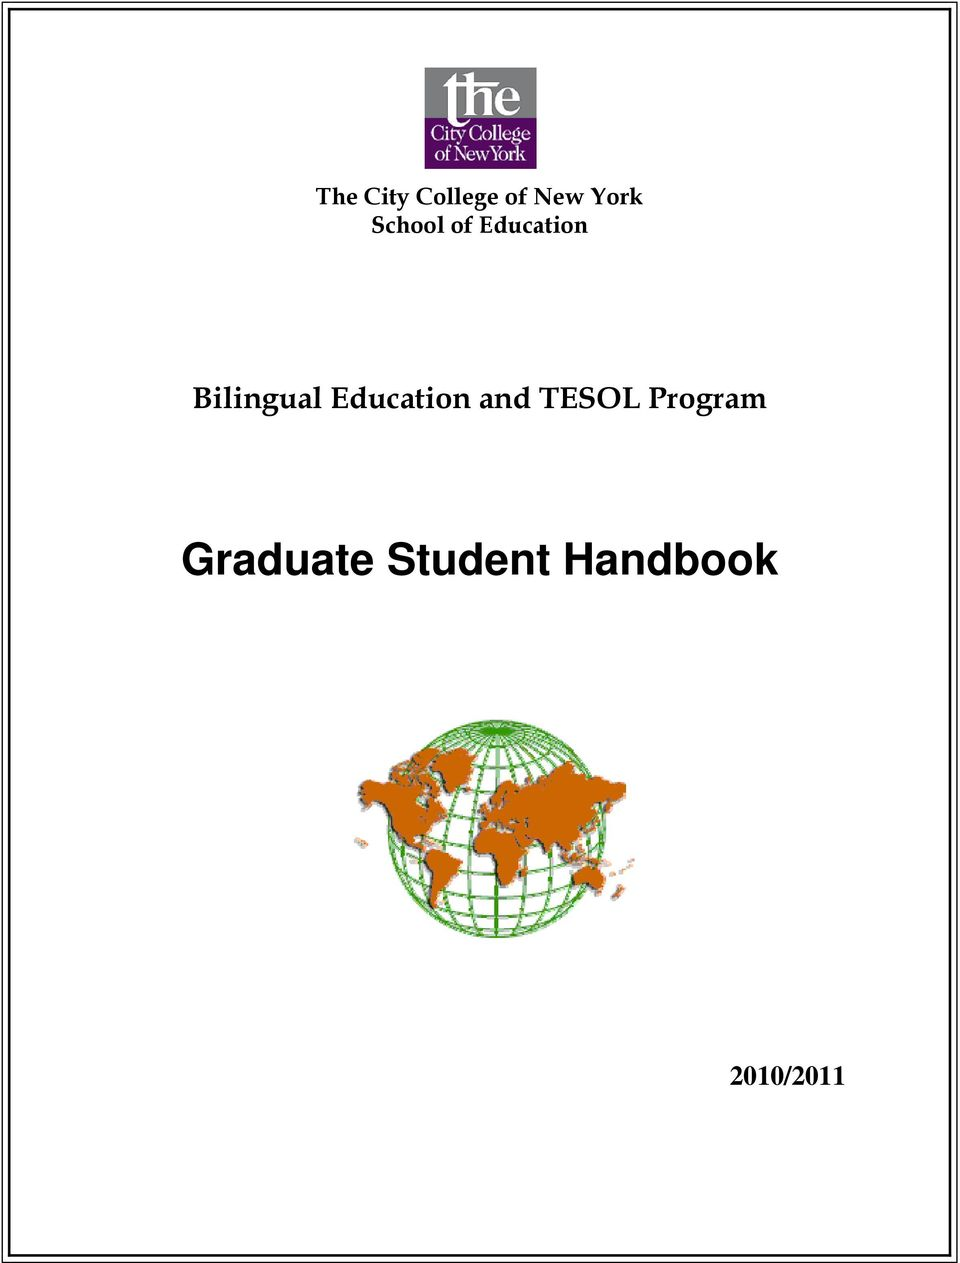 Education and TESOL Program